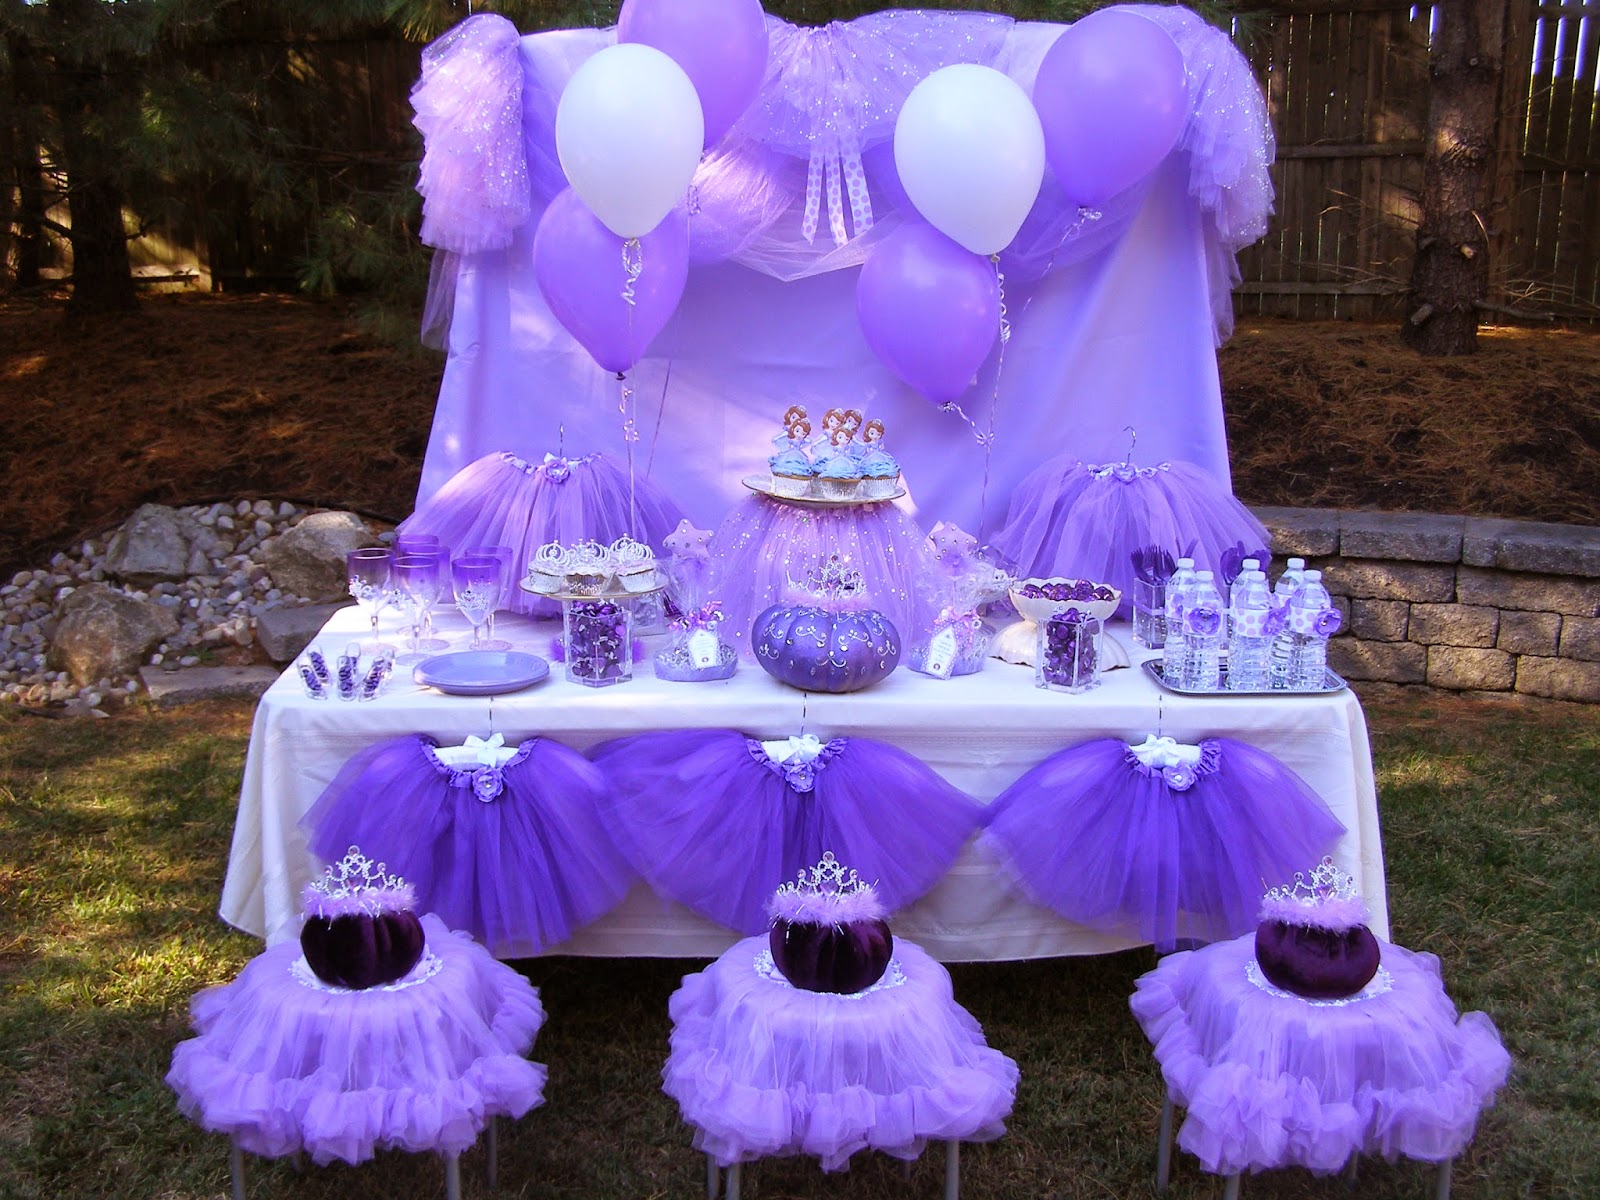 The princess birthday blog introducing our new little purple princess